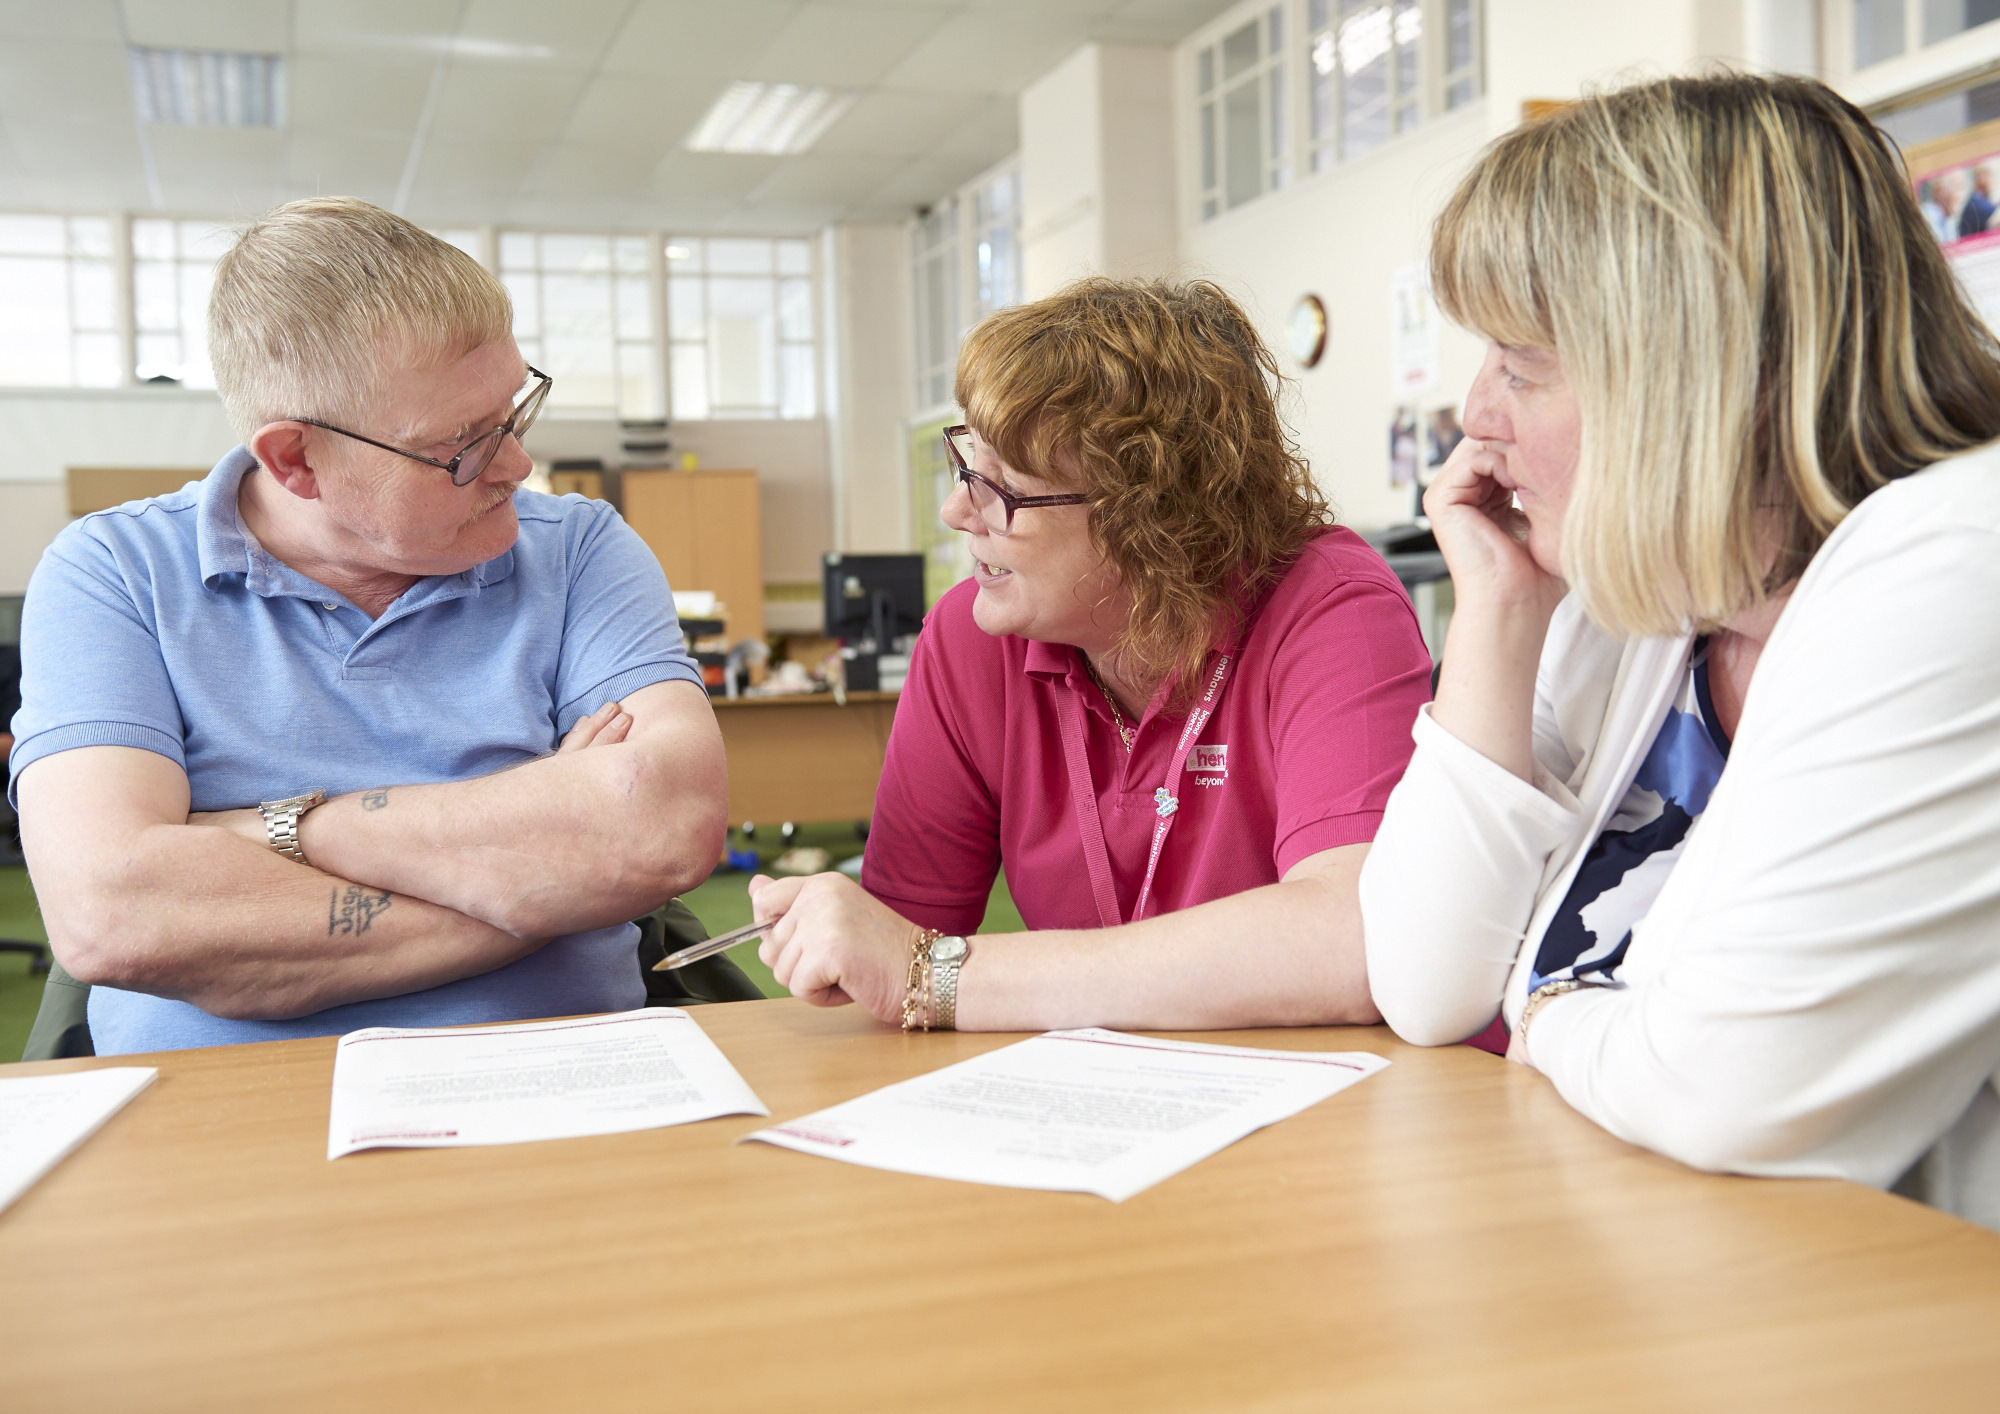 Philippa from the centre chatting to two service users around a table.